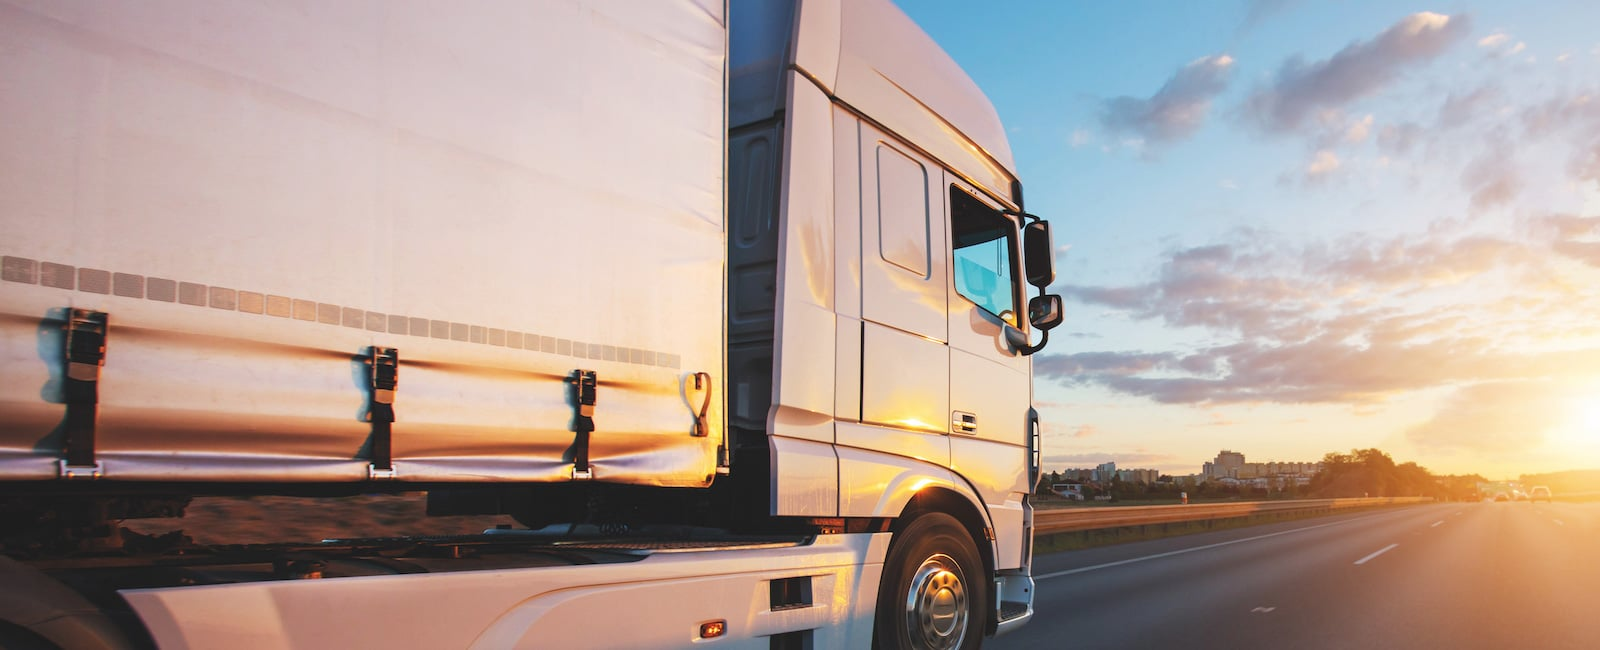 Mandata Transport Management Software for haulage operators